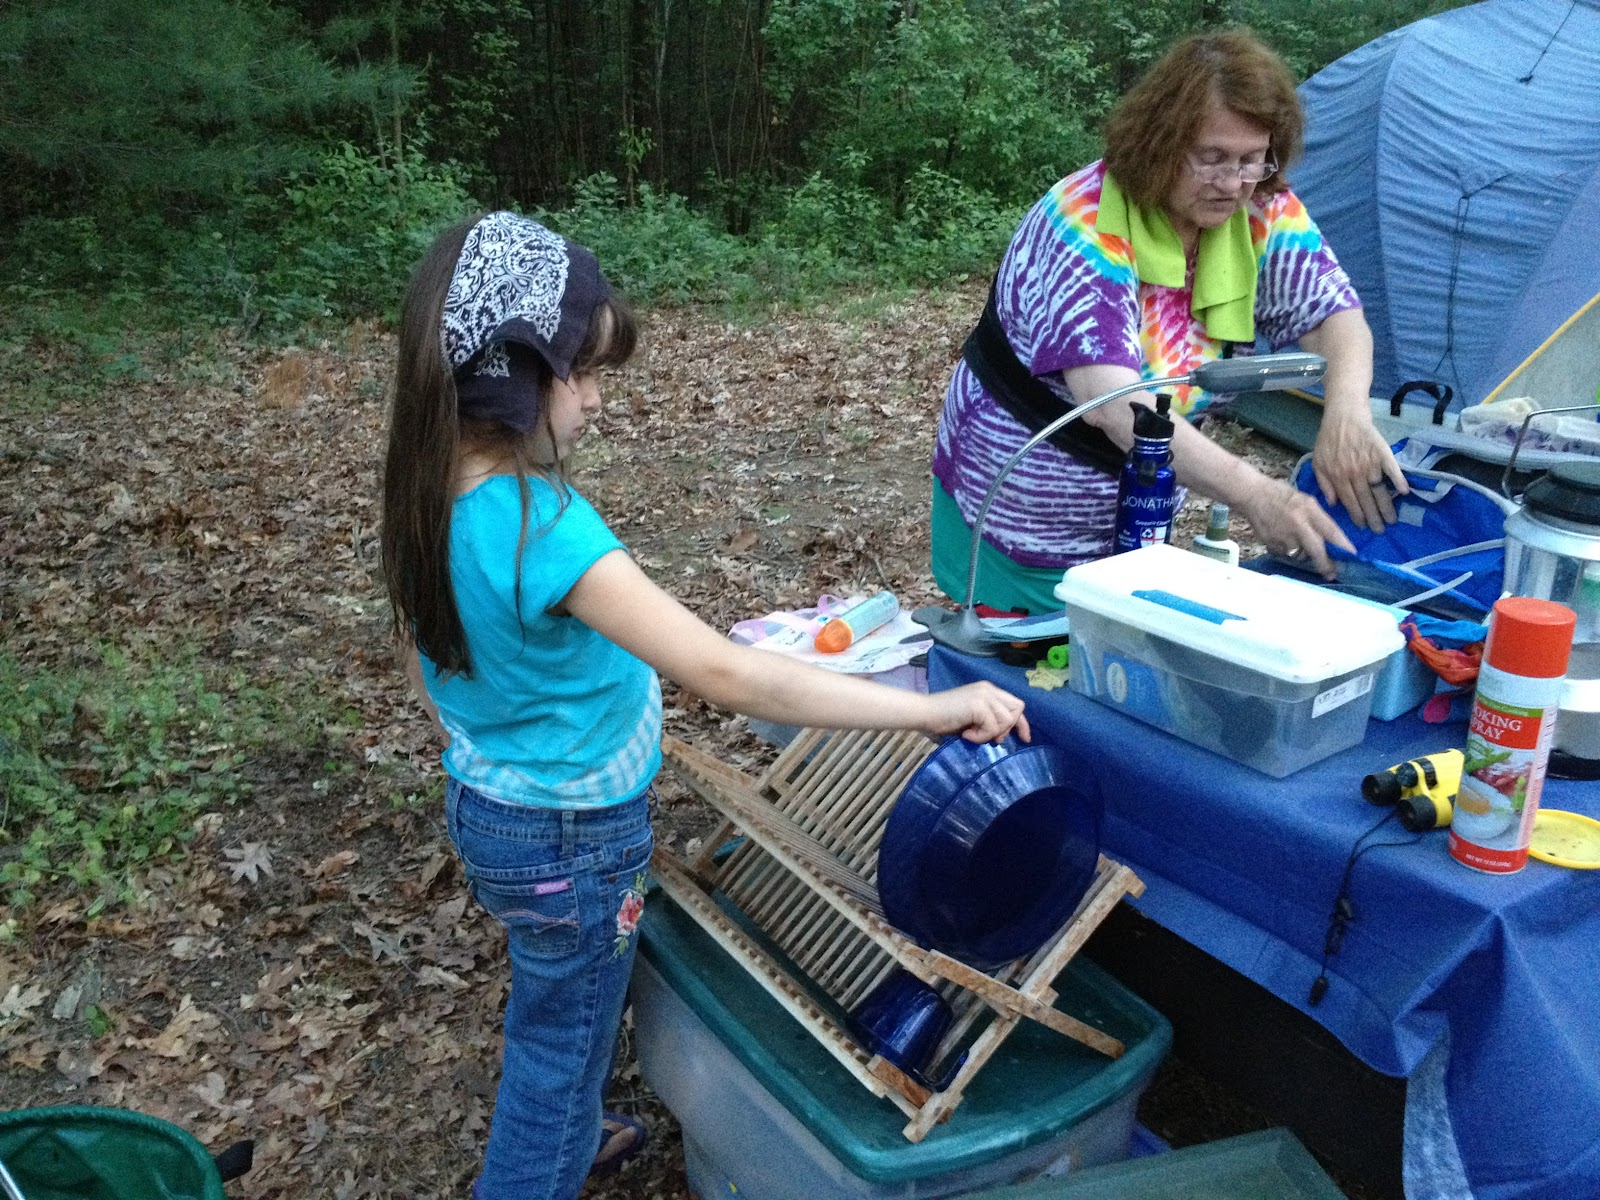 Forum on this topic: How to Clean Dishes on a Camping , how-to-clean-dishes-on-a-camping/